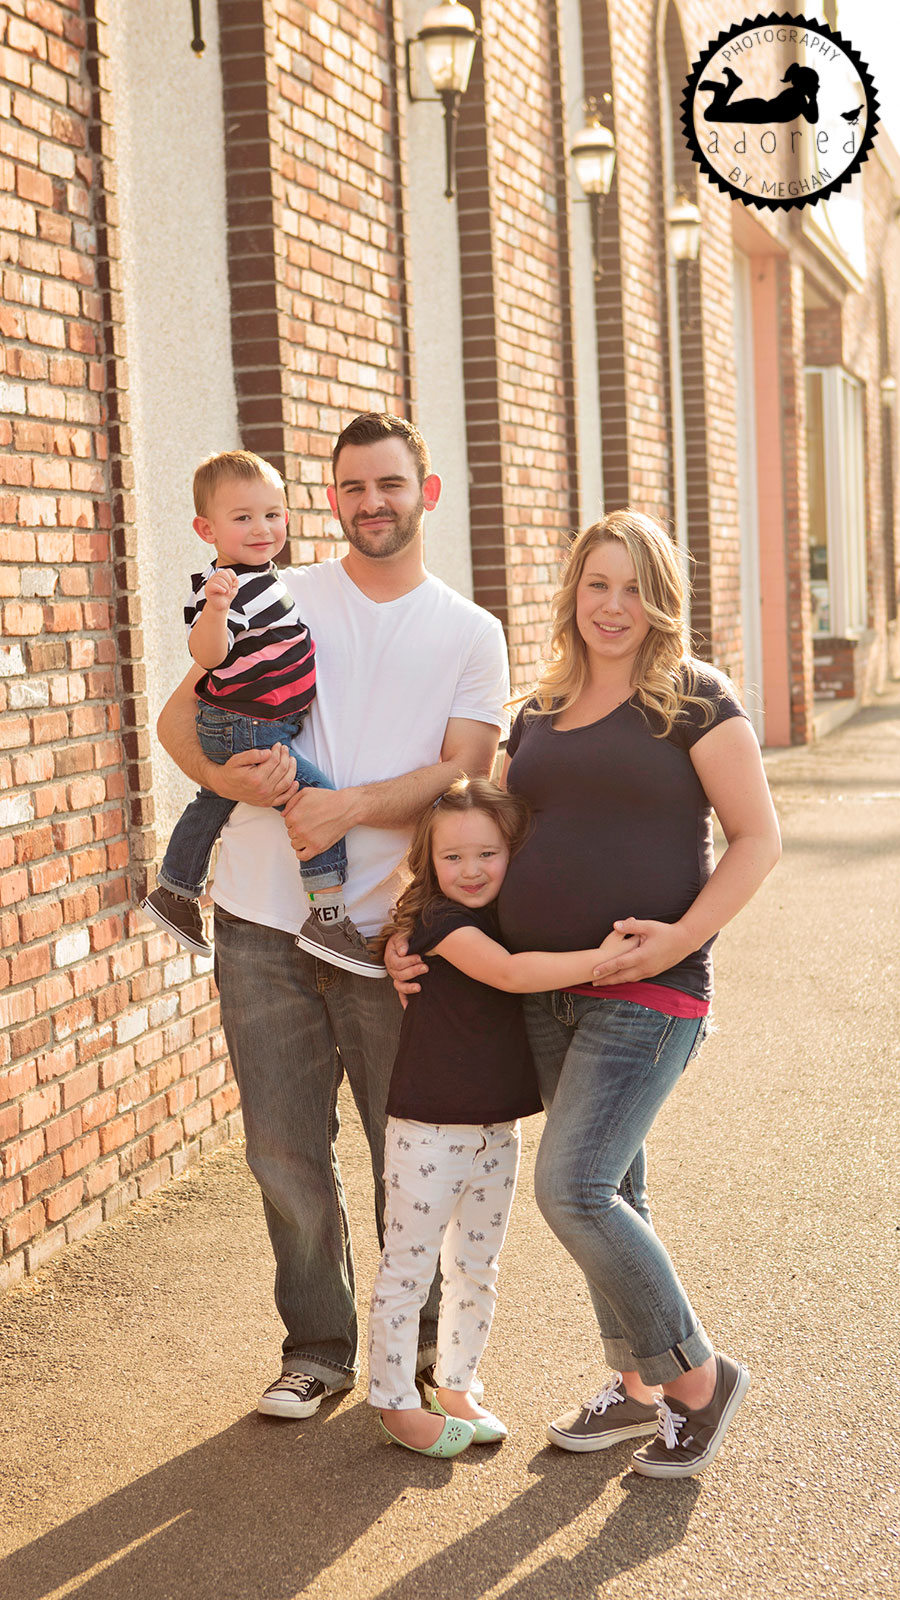 Family Downtown Urban Kennewick, WA Maternity Photographer Adored by Meghan photography